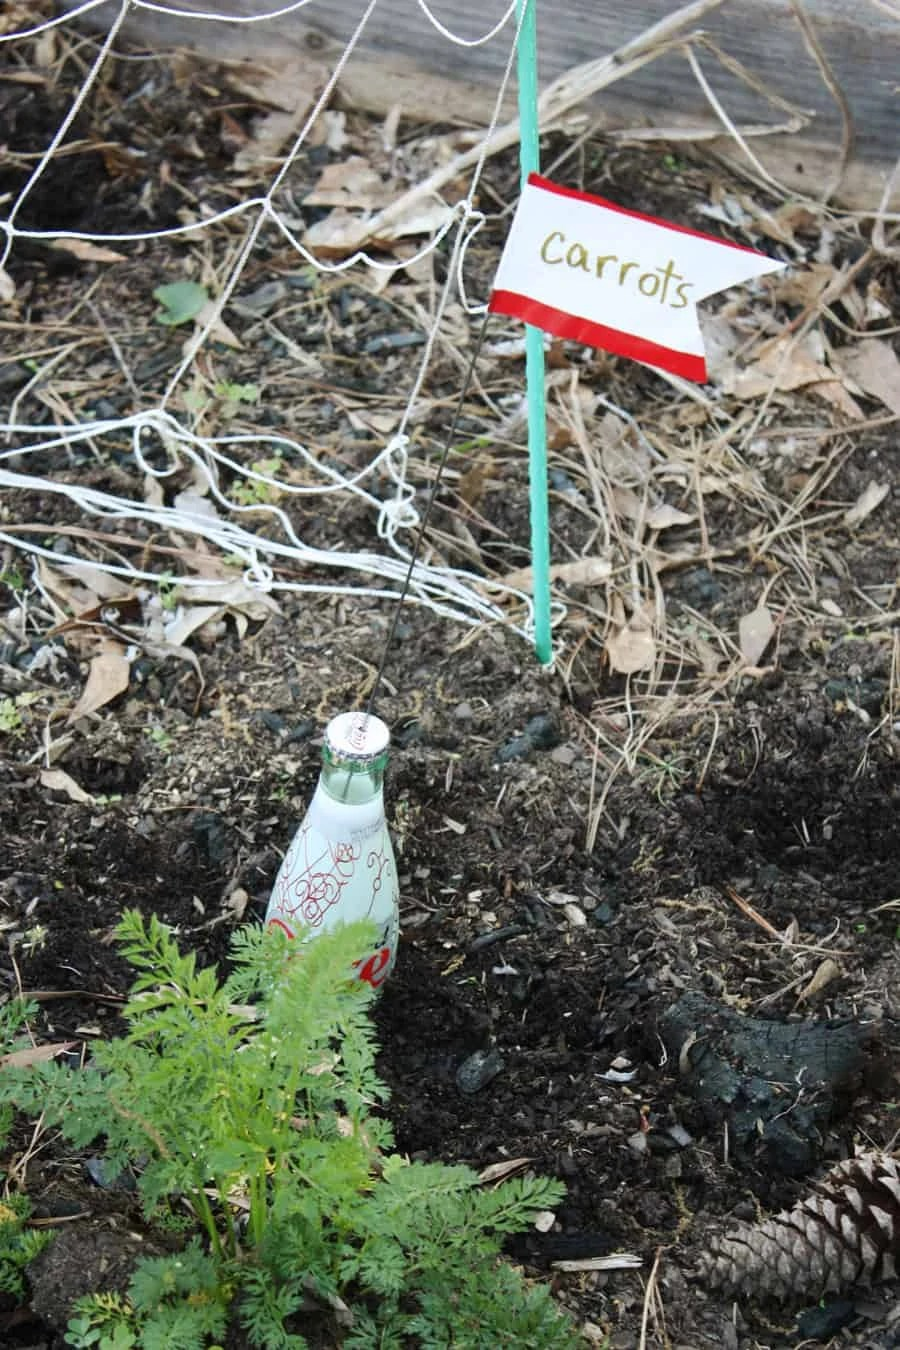 DIY garden plant markers: an easy way to recycle glass bottles and add more color to your yard! | via The Spirited Violet